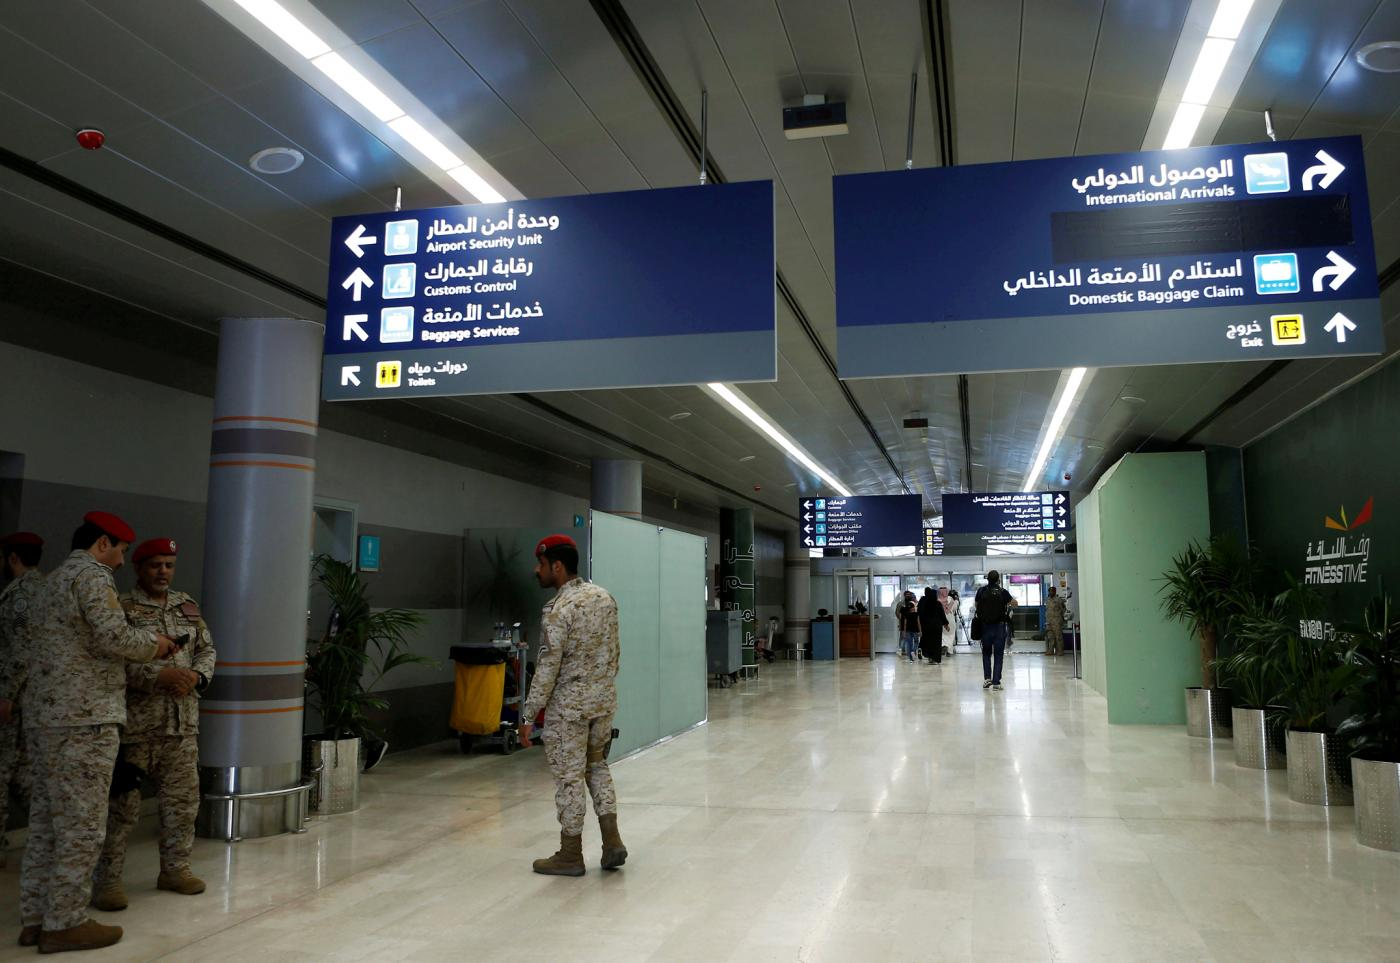 Saudi Arabia: nine injured in Houthi attack on Abha Airport